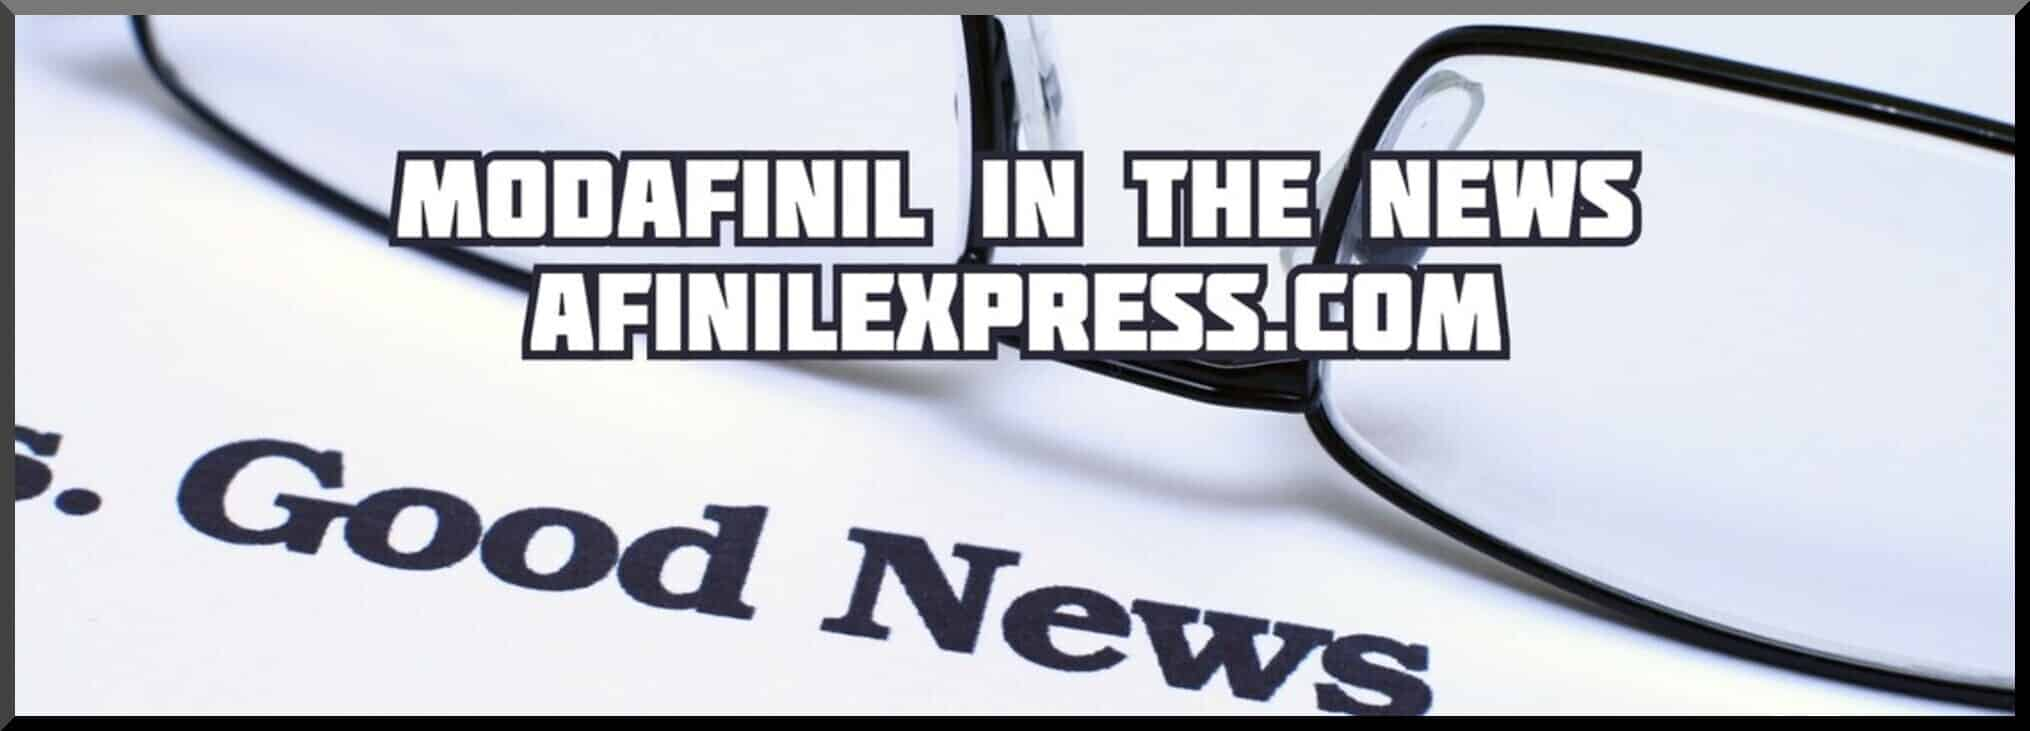 modafinil in the news